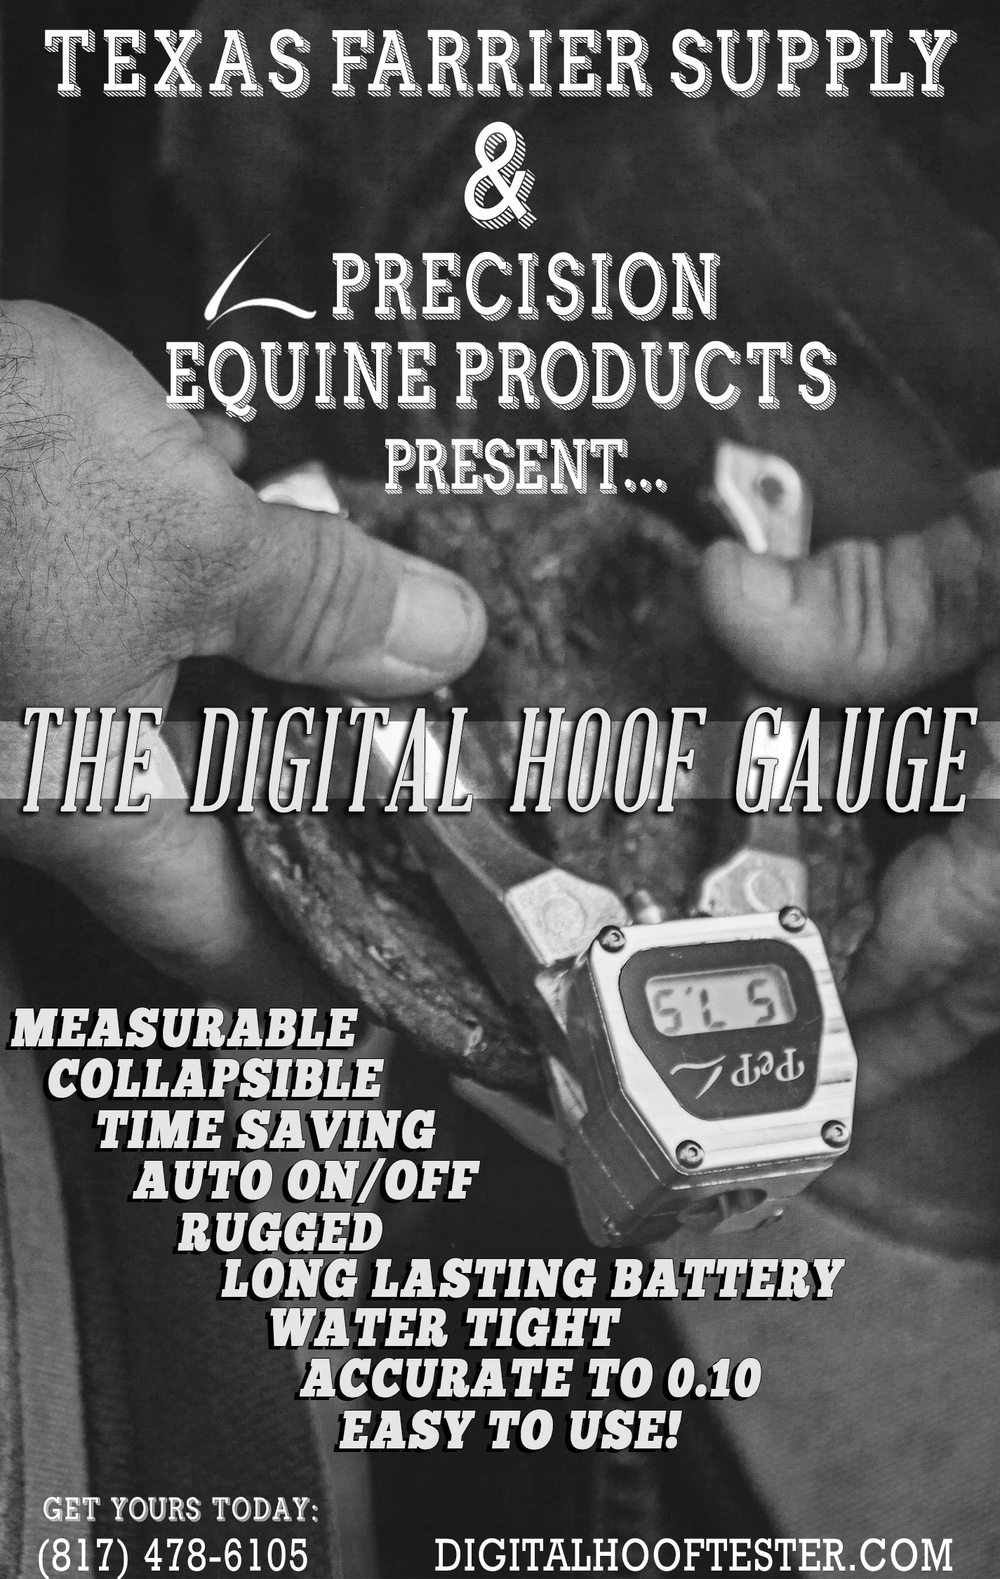 MOCK UP HOOF GAUGE AD.jpg